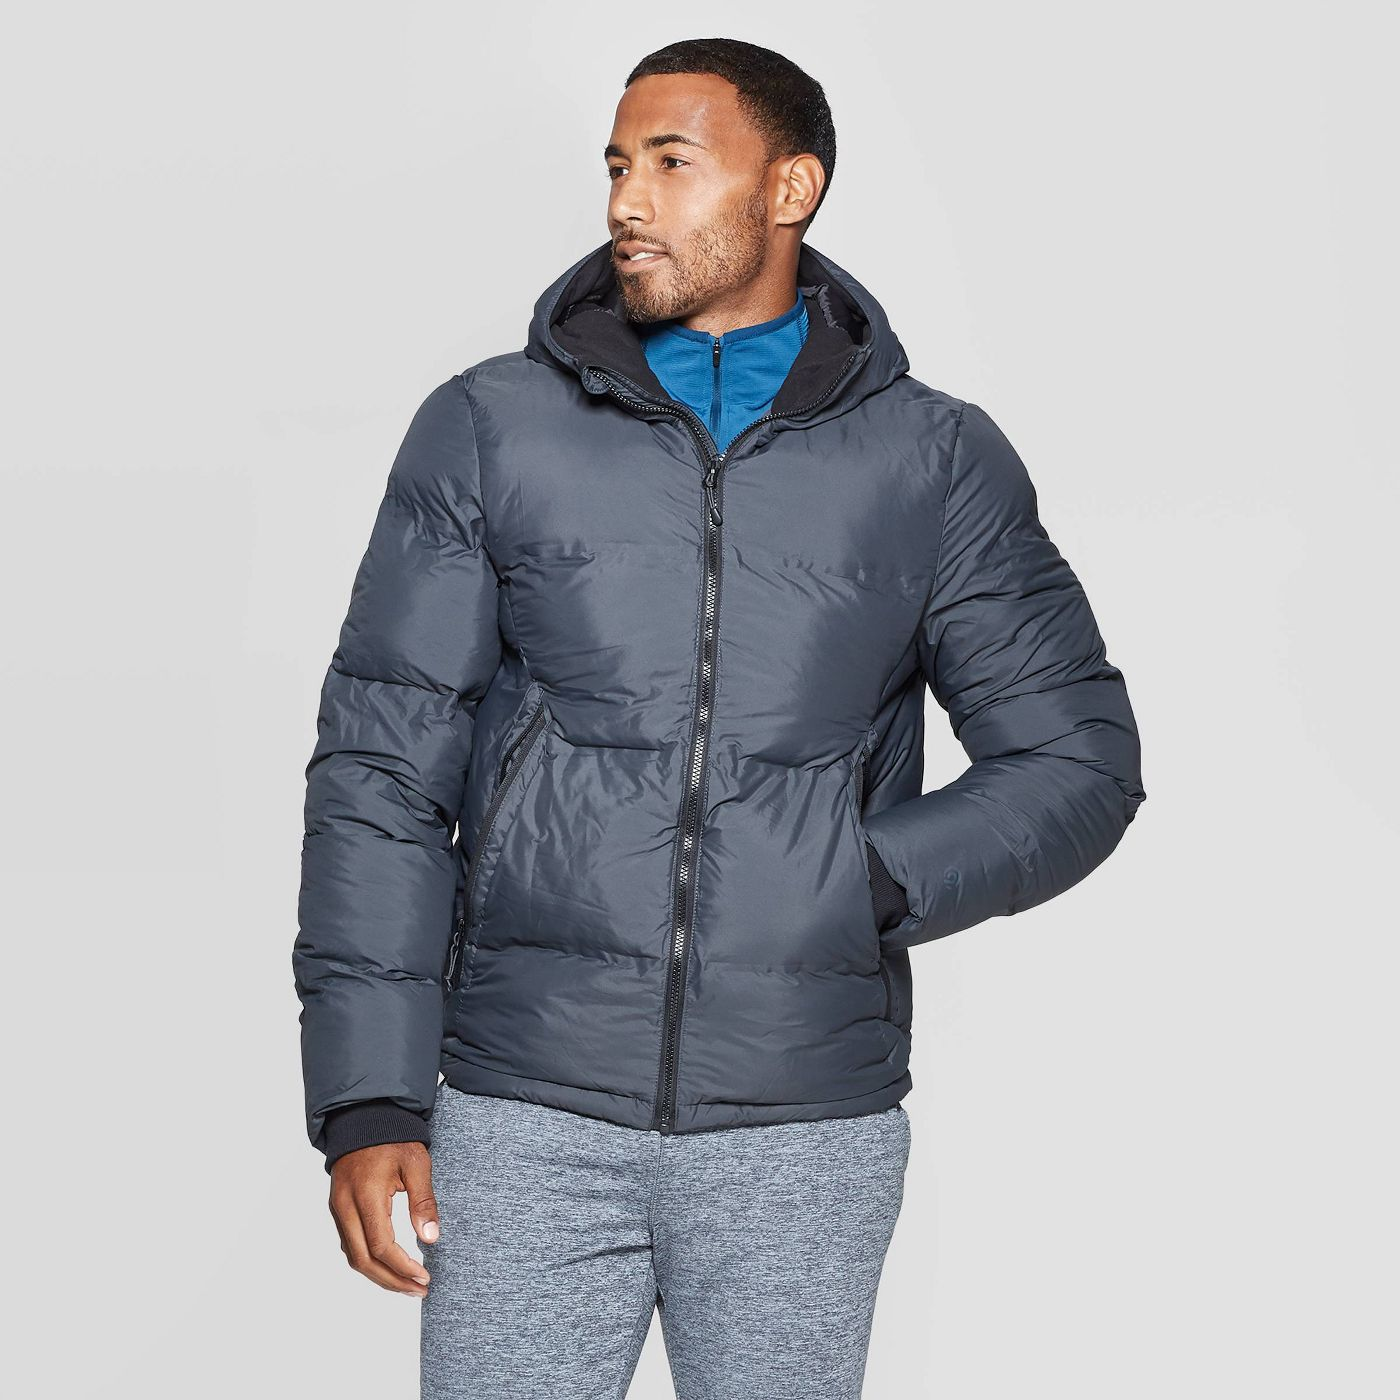 C9 Champion Men's Puffer Jacket